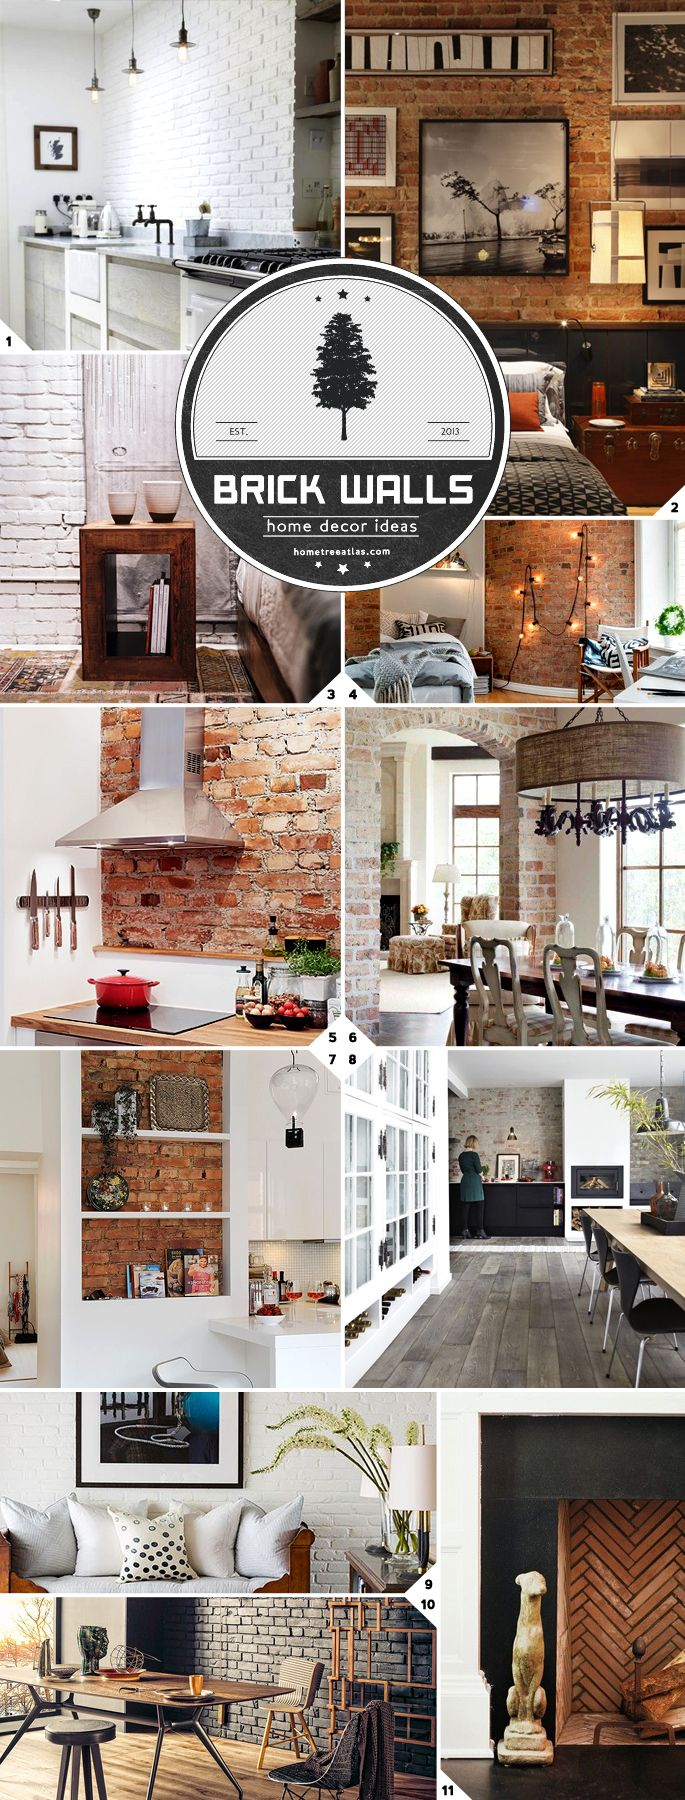 If I could find a somewhat logical place for brick I would love to add a wall or accent like some of these